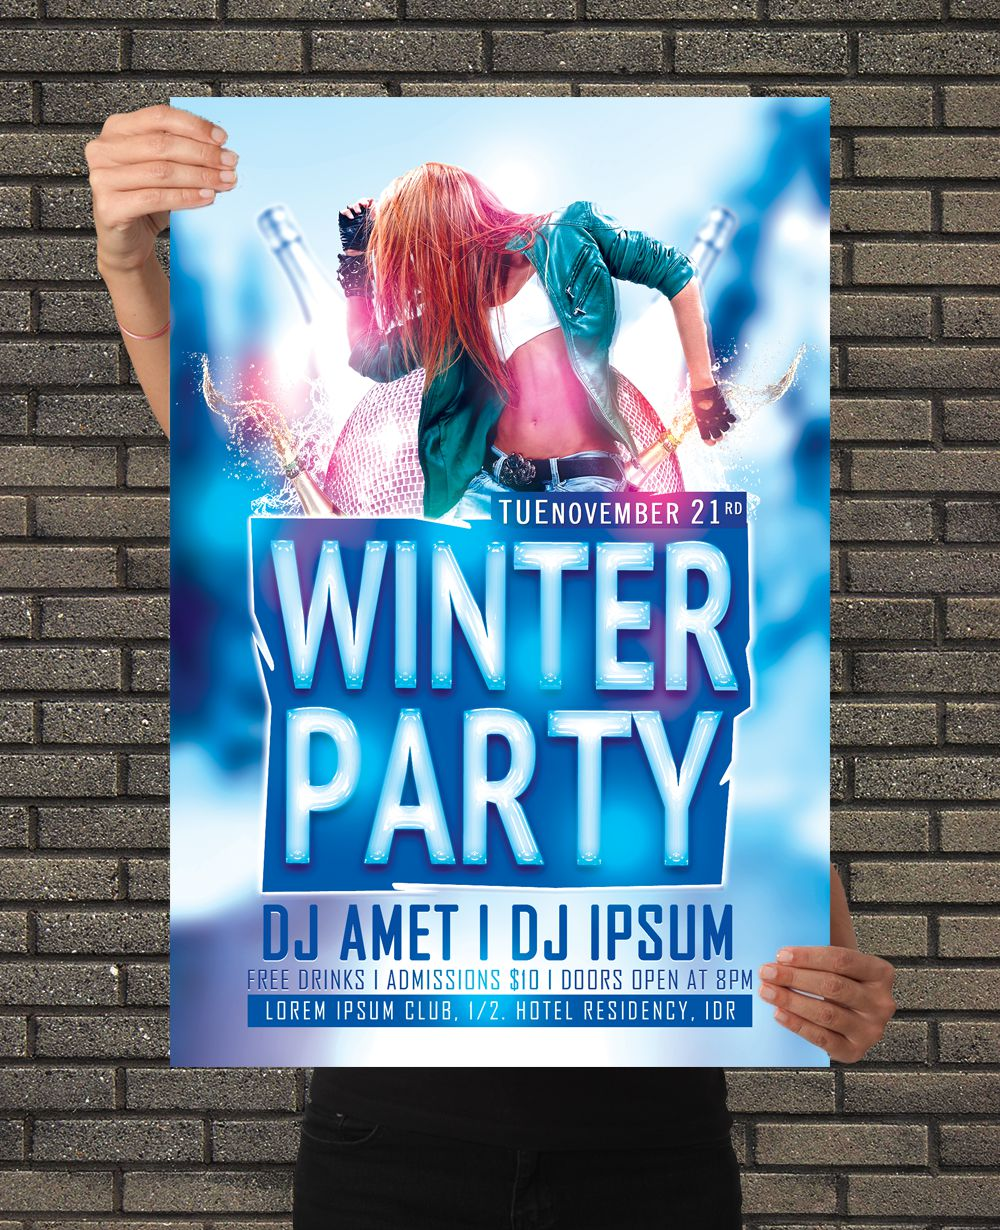 Winter Party DJ Flyer Design